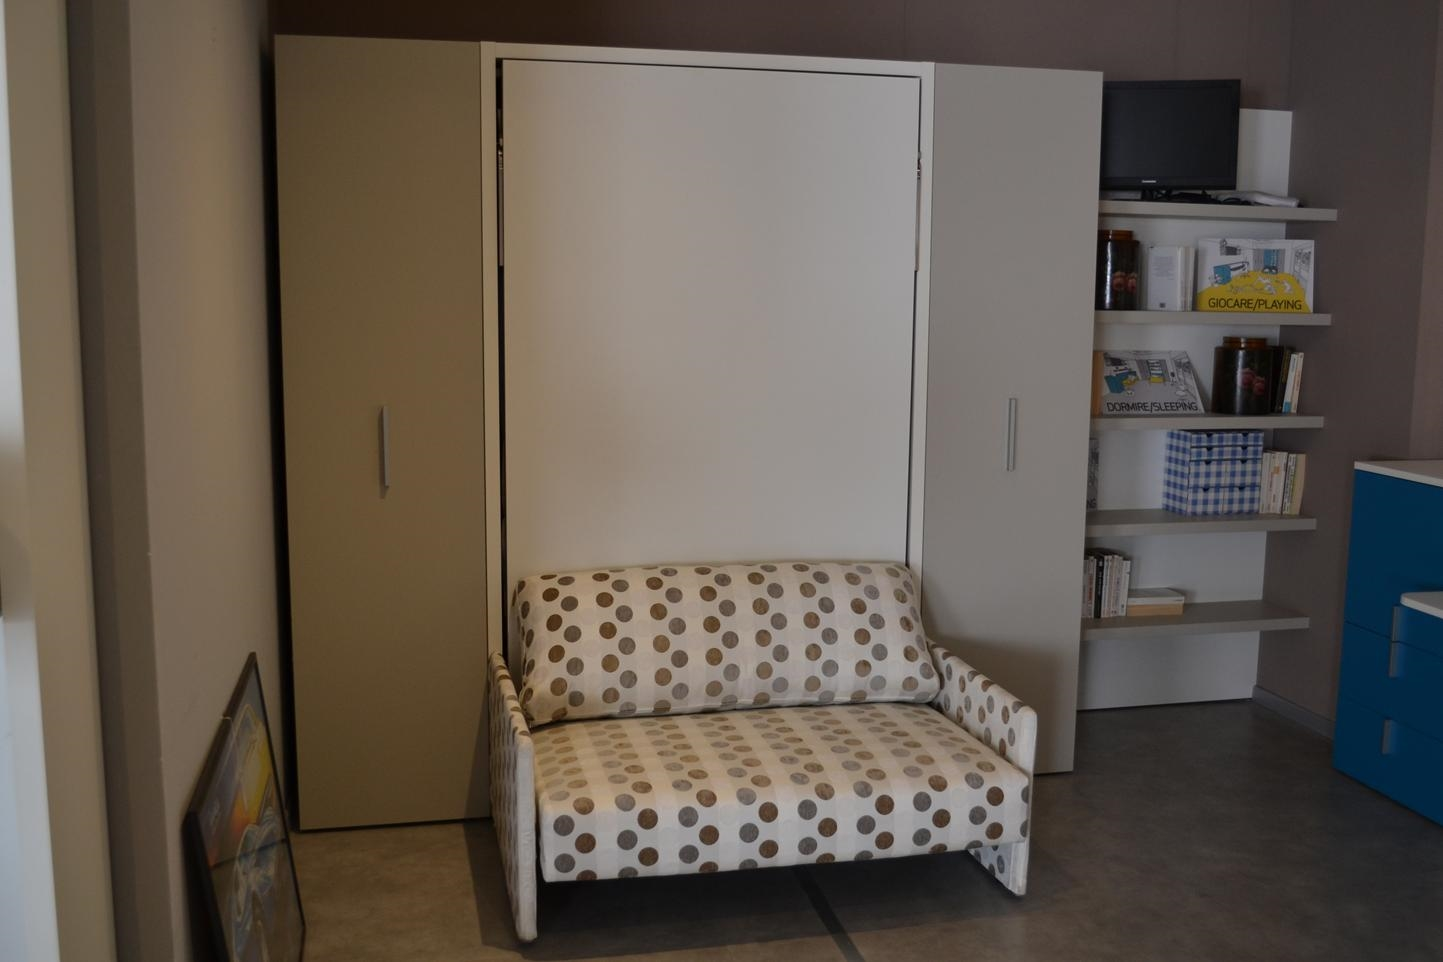 Clei altea book 120 sofa'